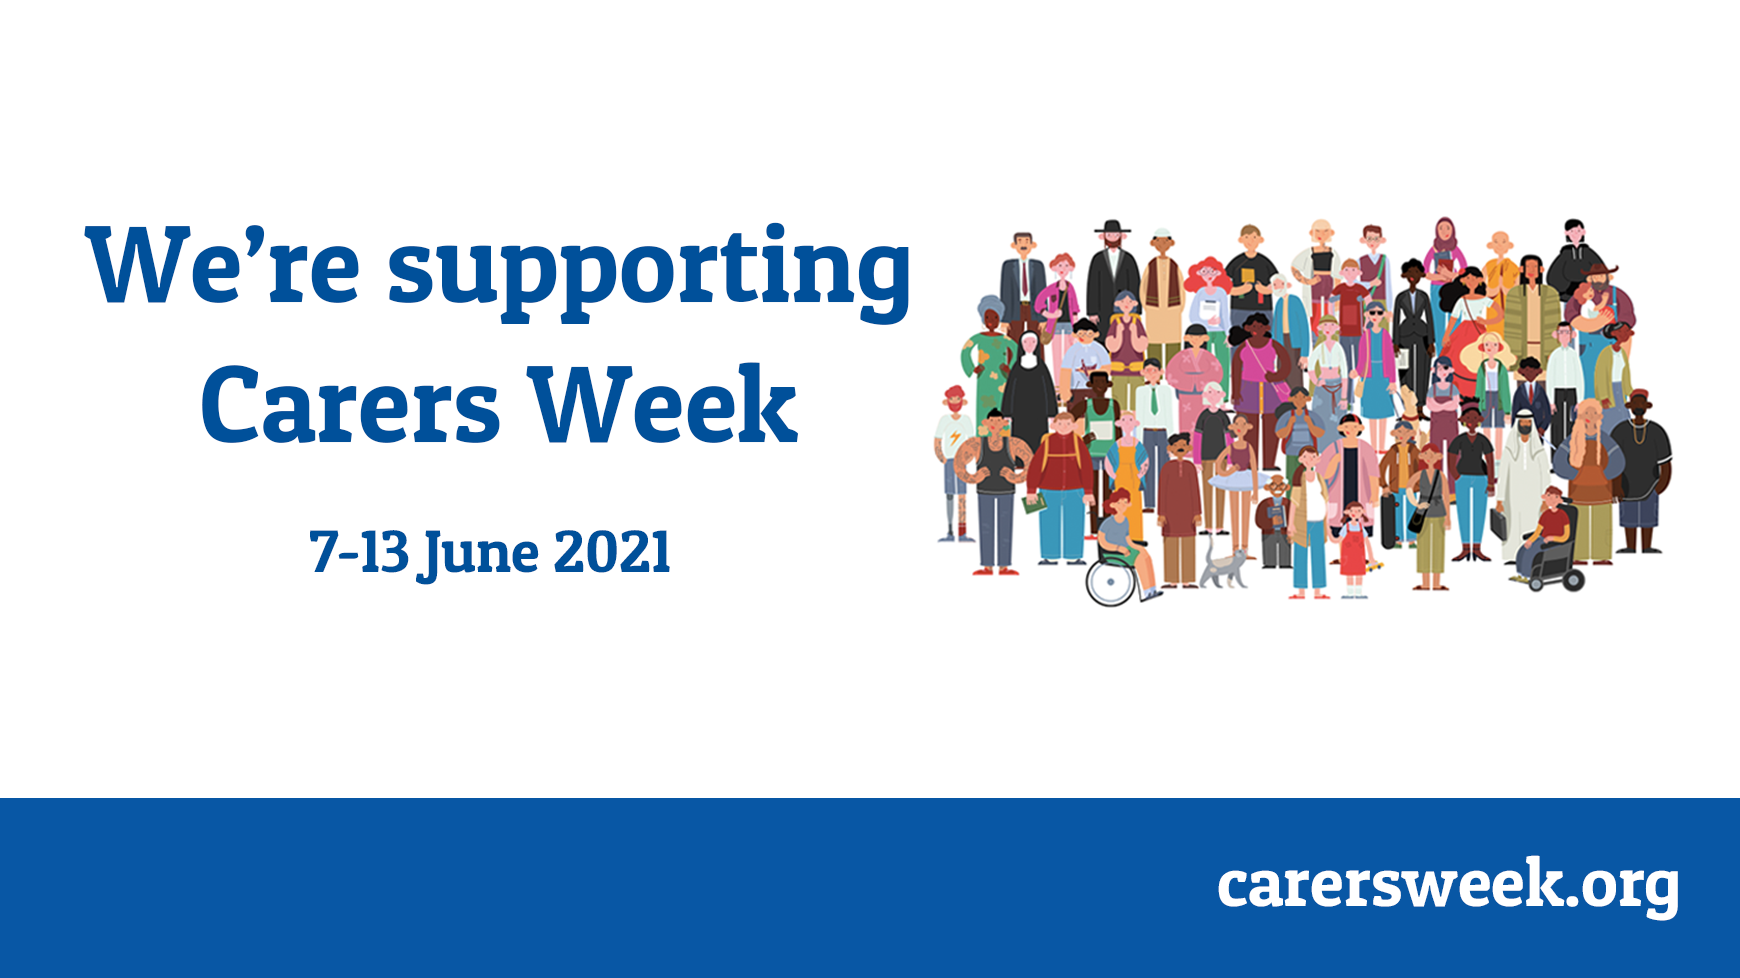 """official promotional material from carersweek.org showing an illustration of a large group of people and the words """"We're supporting Carers Week 7-13 June 2021"""""""""""